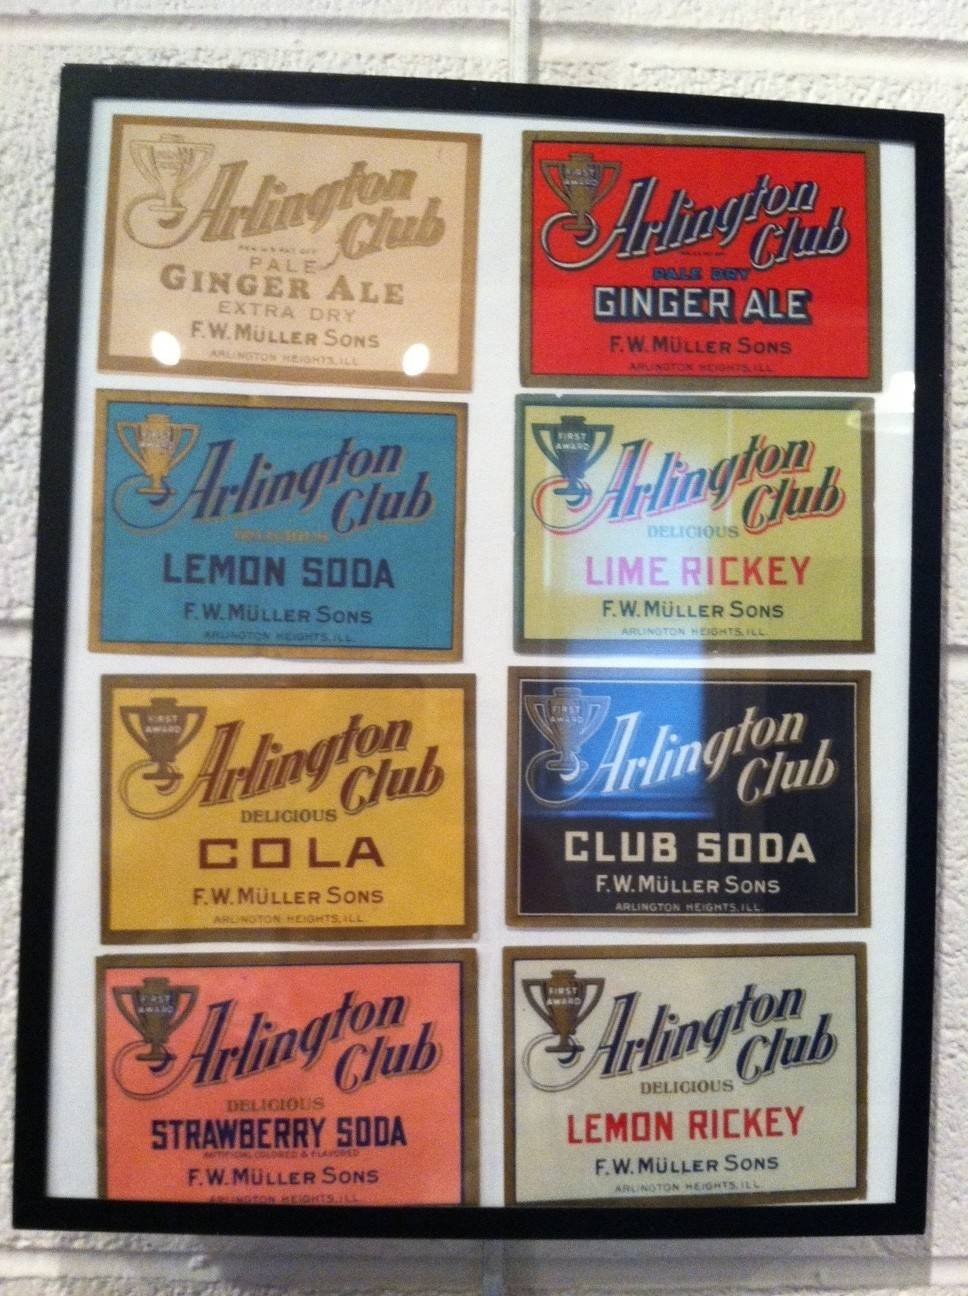 No holiday or party was complete without a selection of Arlington Club soda. Many Arlington Heights residents still remember making that trip to the soda pop factory to stock up on their favorite flavors.